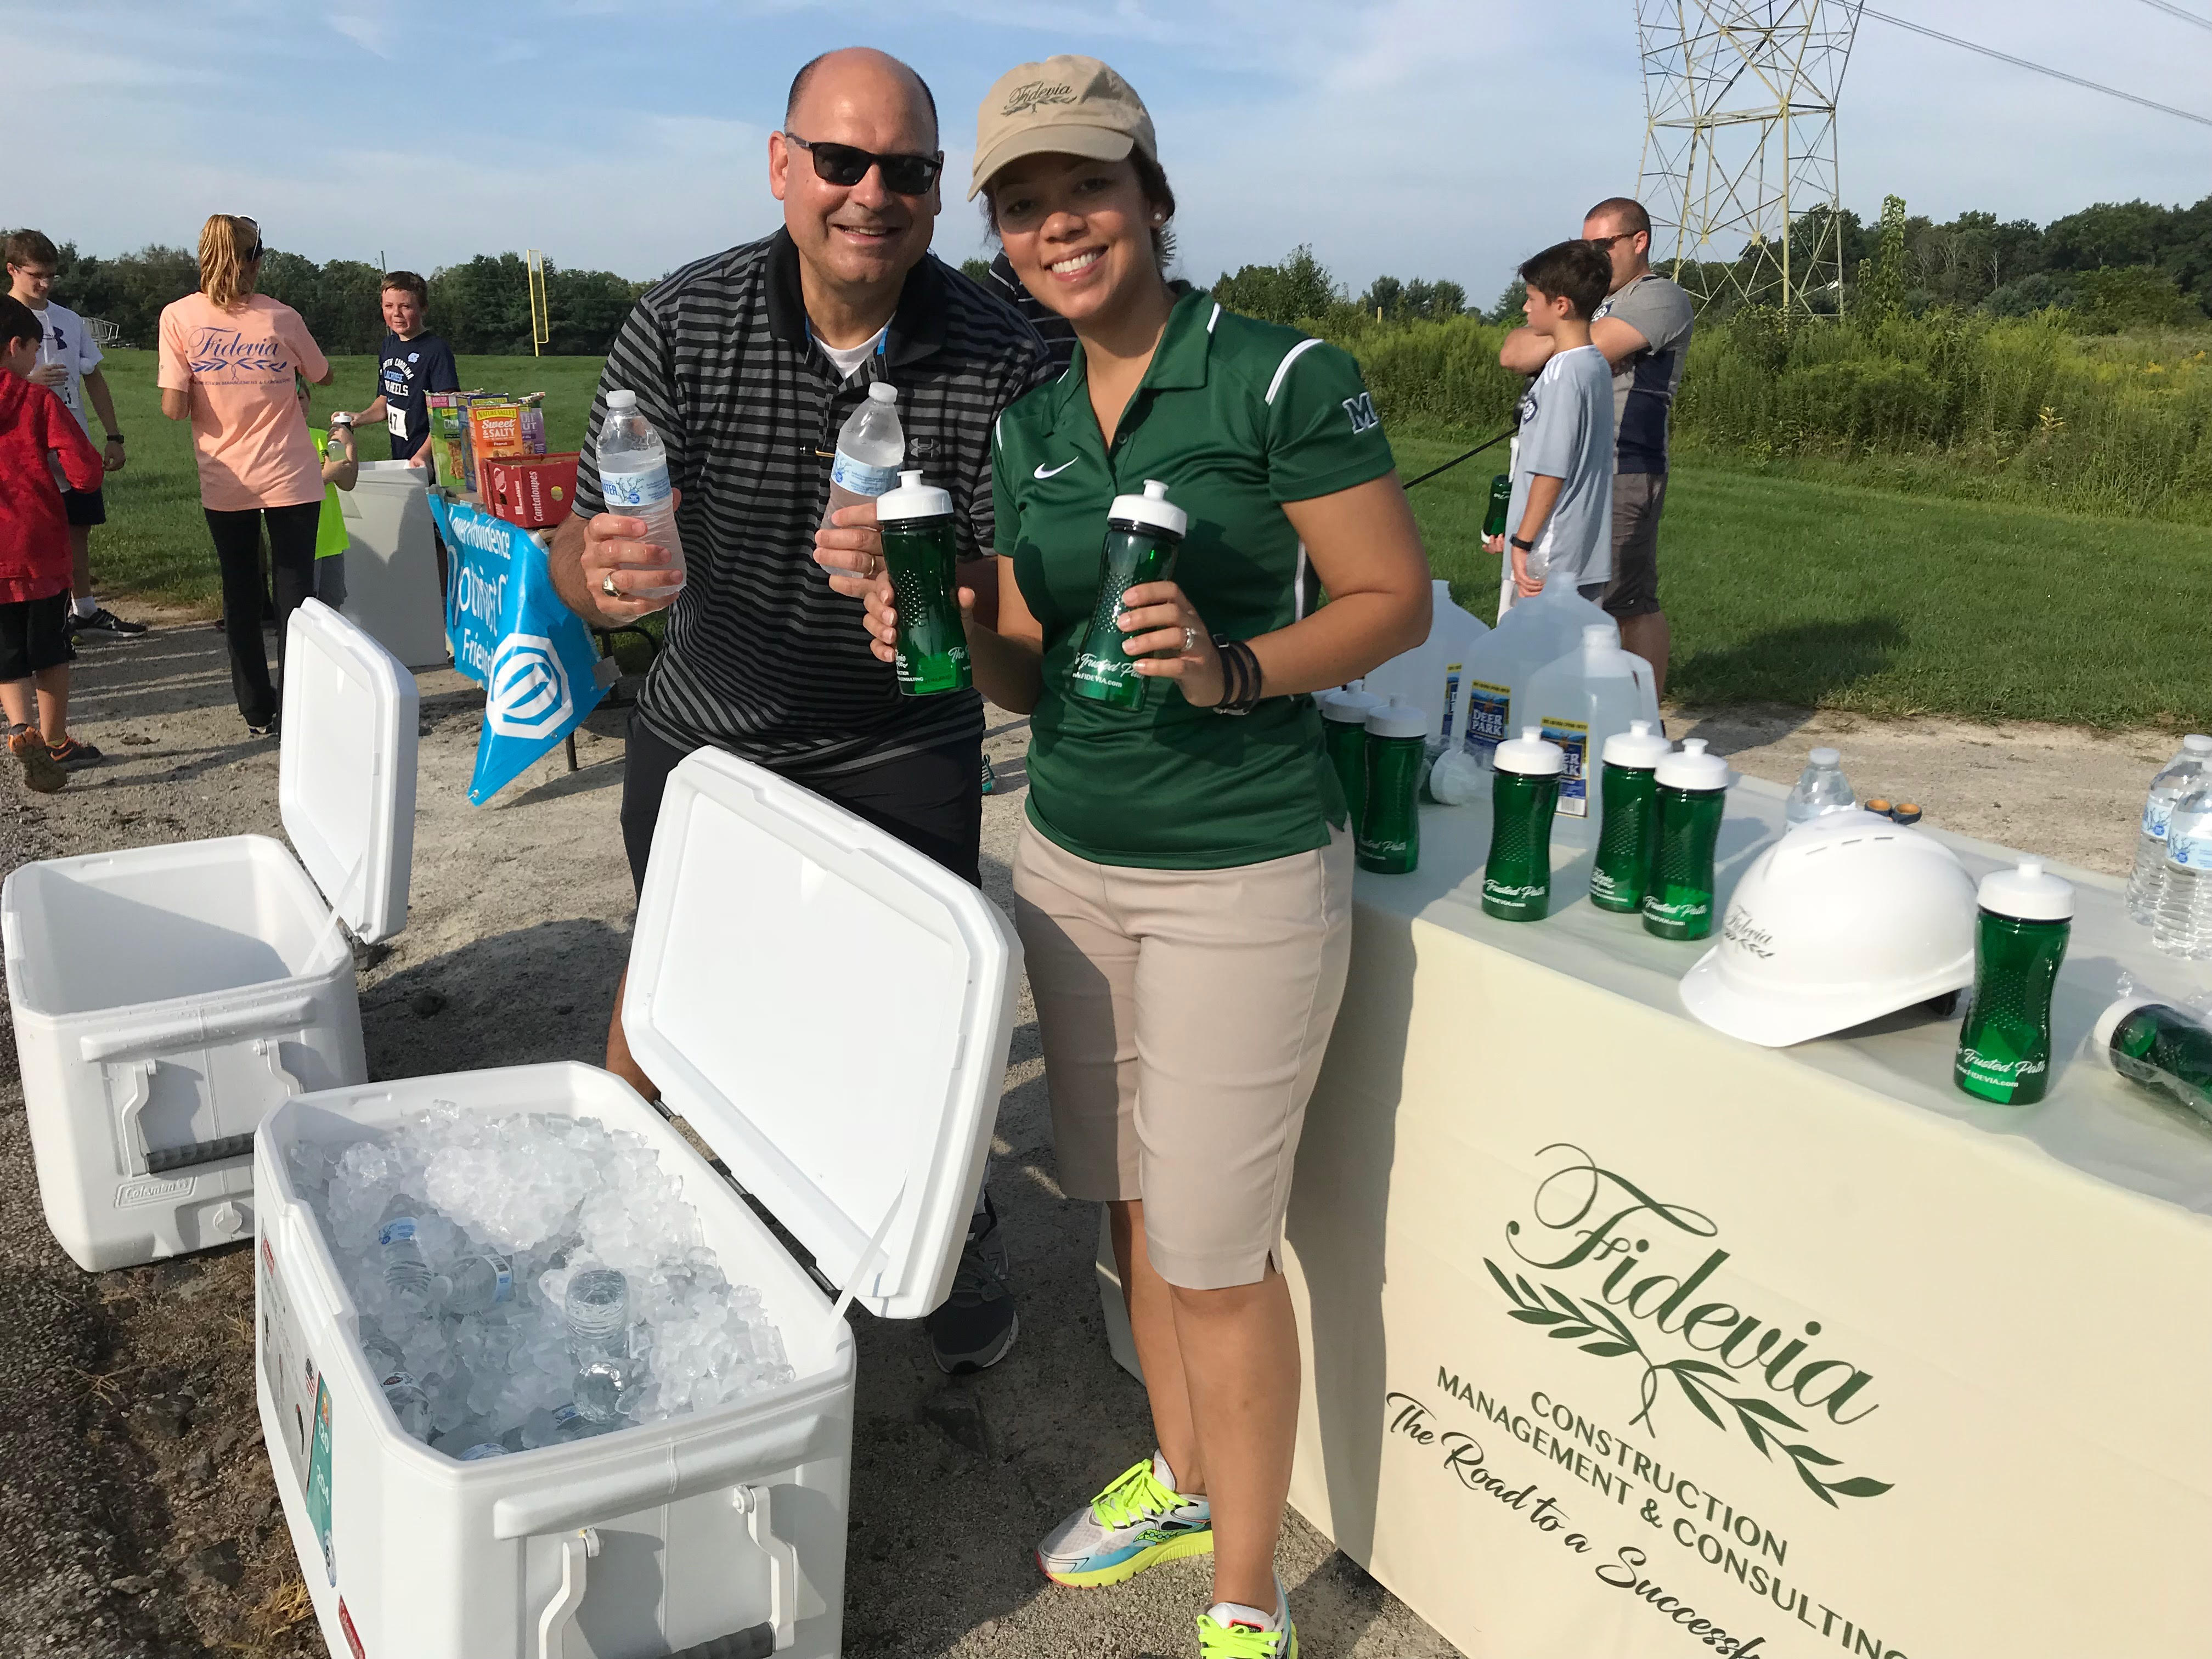 Fidevia Hands Out Water to Runners at 5K